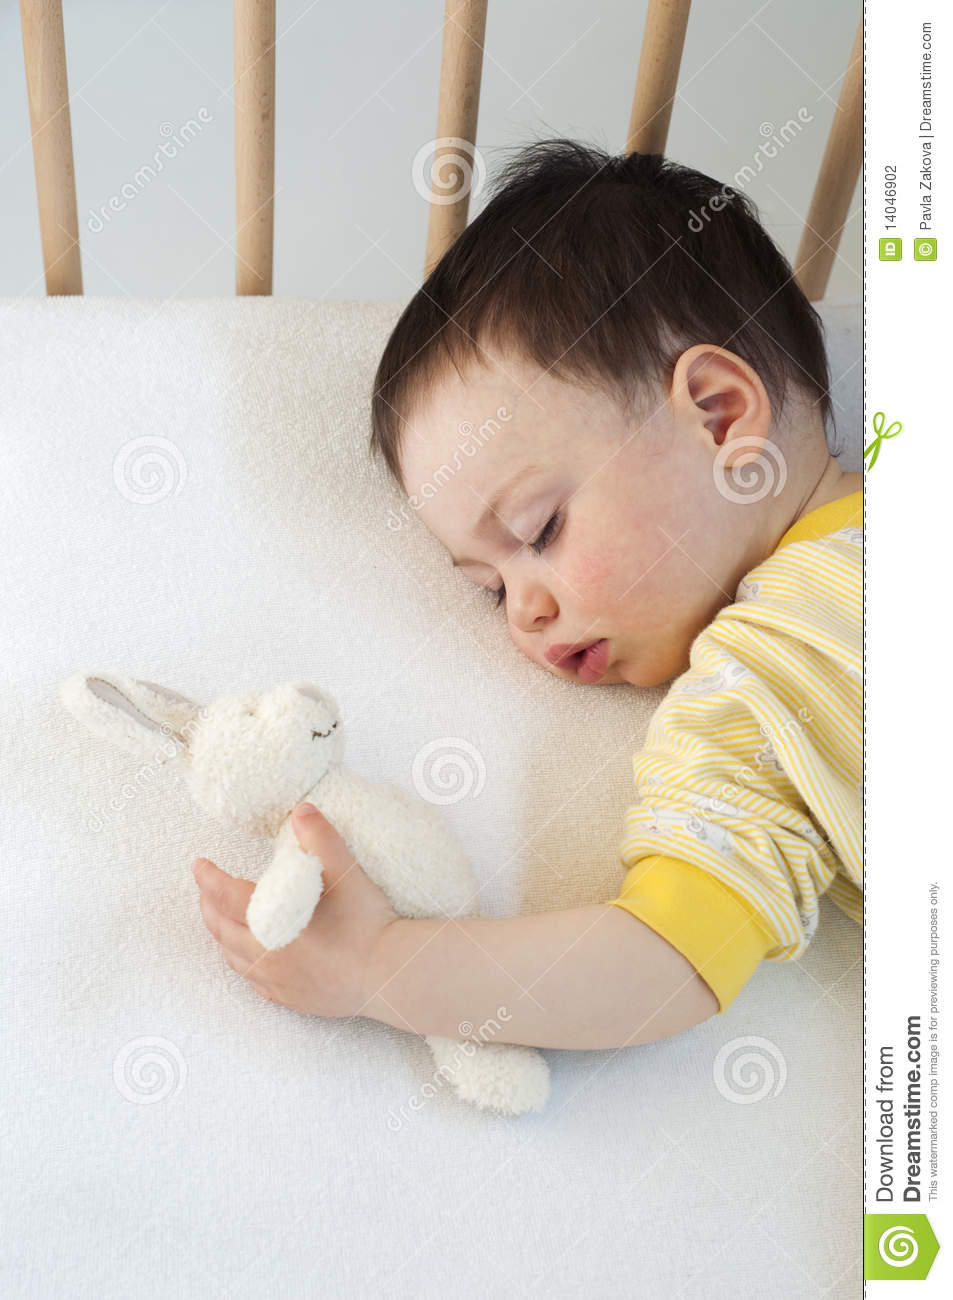 Baby Sleeping With A Soft Toy Stock Photo Image Of Girl